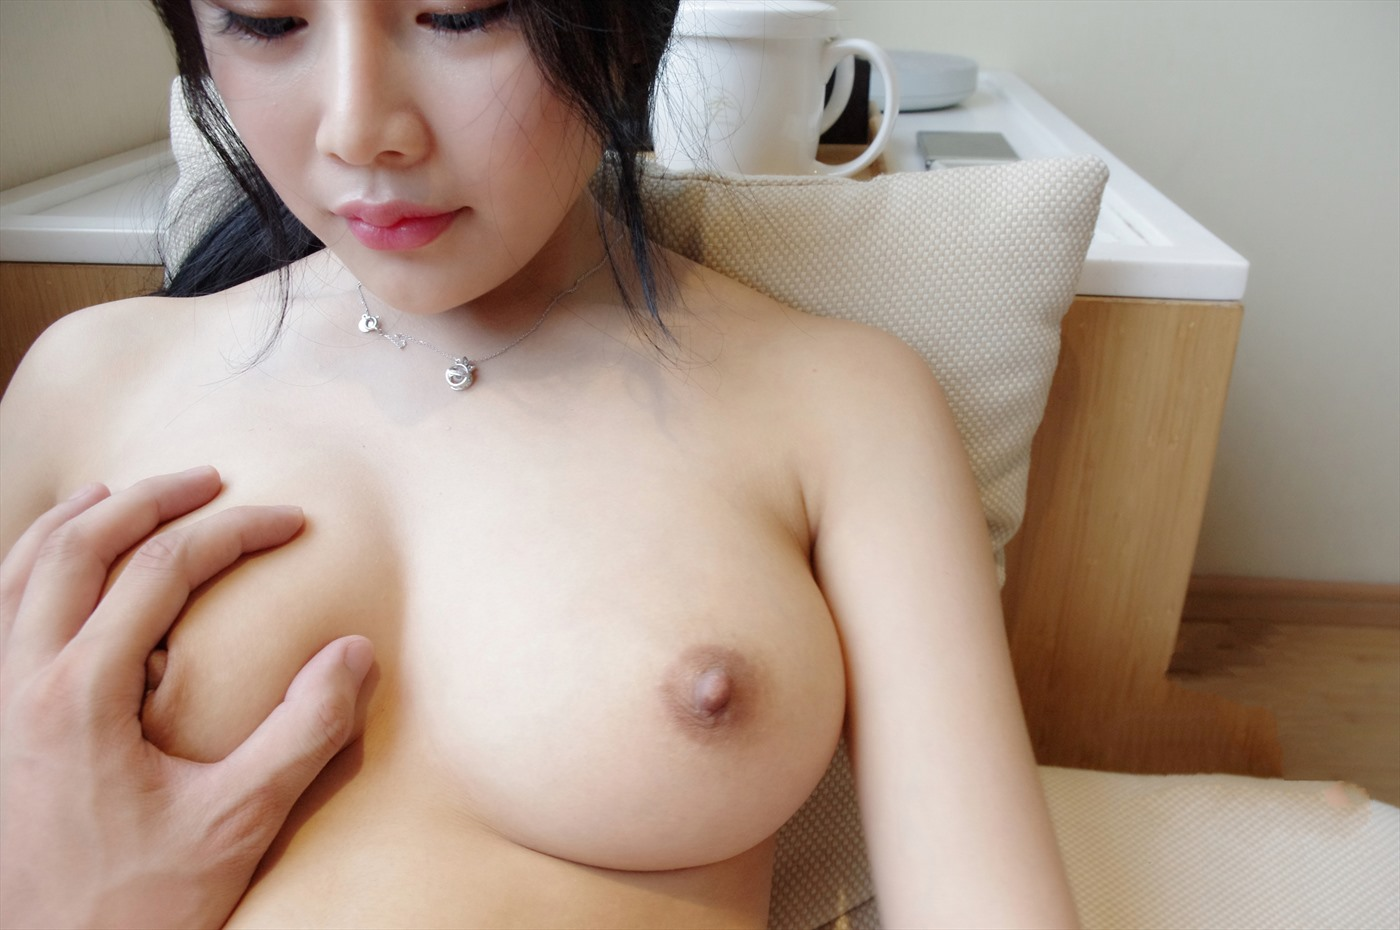 Valuable naked girls with jucy pussy consider, that